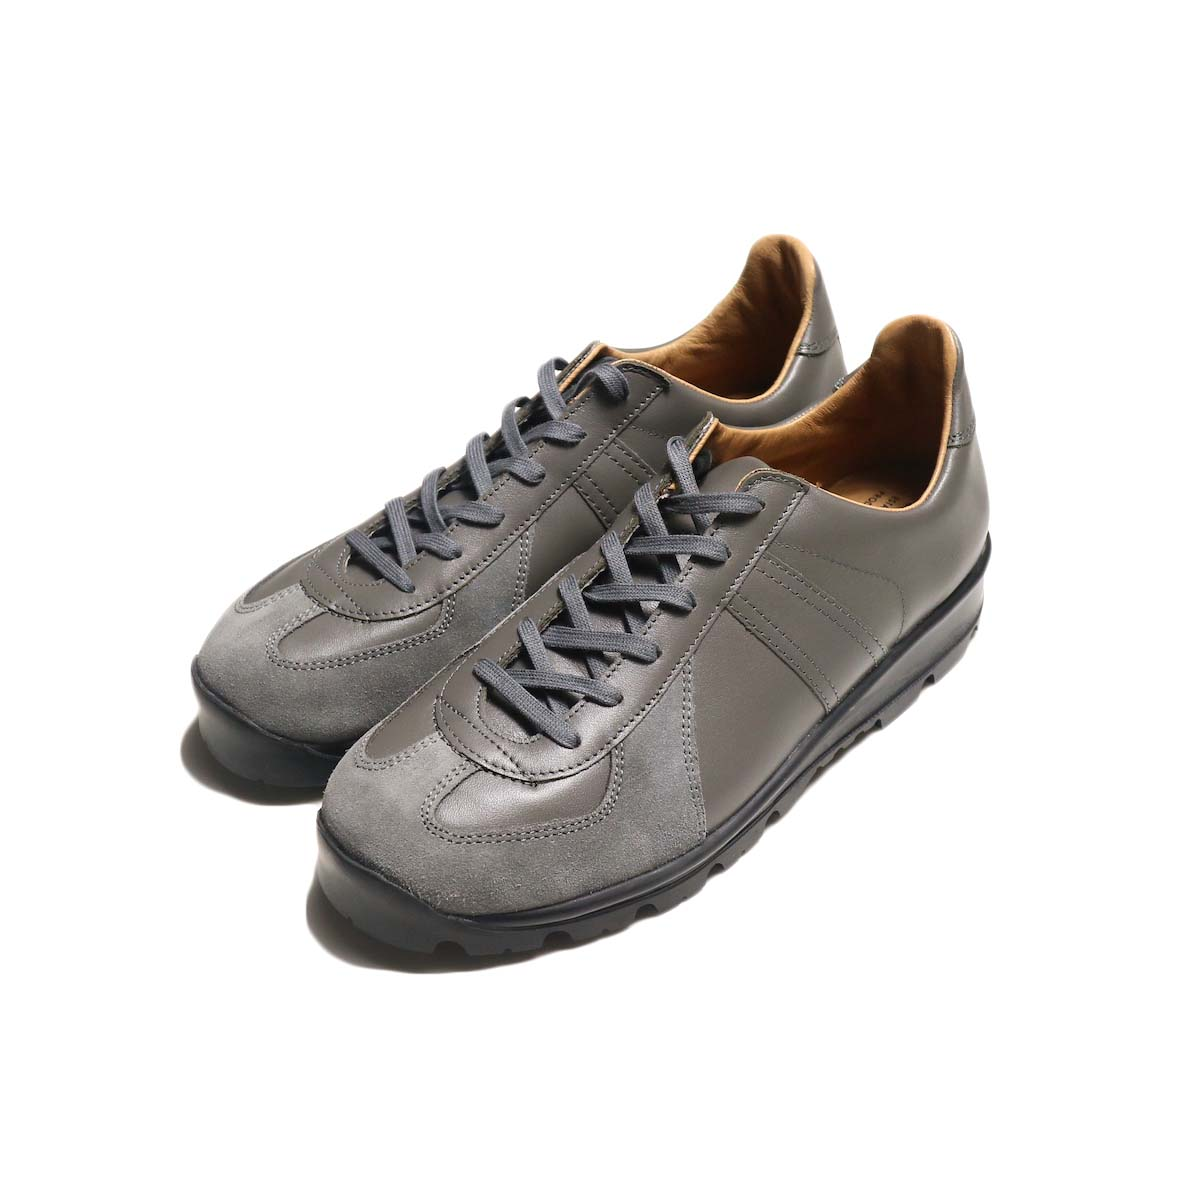 REPRODUCTION OF FOUND / GERMAN MILITARY TRAINER (TACTICAL) (Dark Gray) 全体